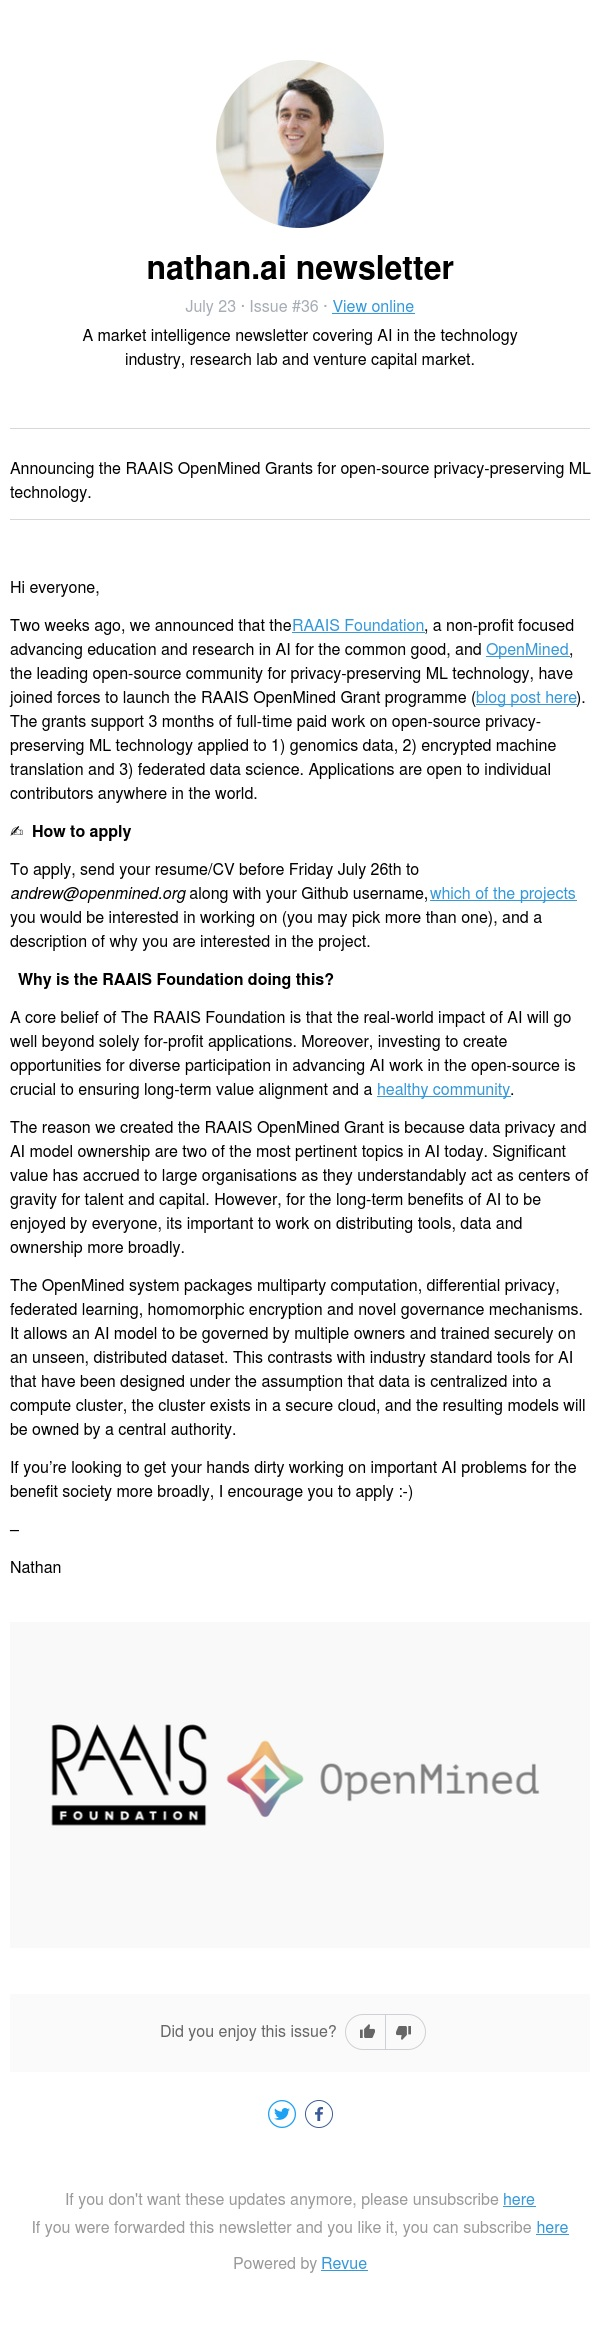 🤓 RAAIS OpenMined Grants for privacy-preserving ML tools